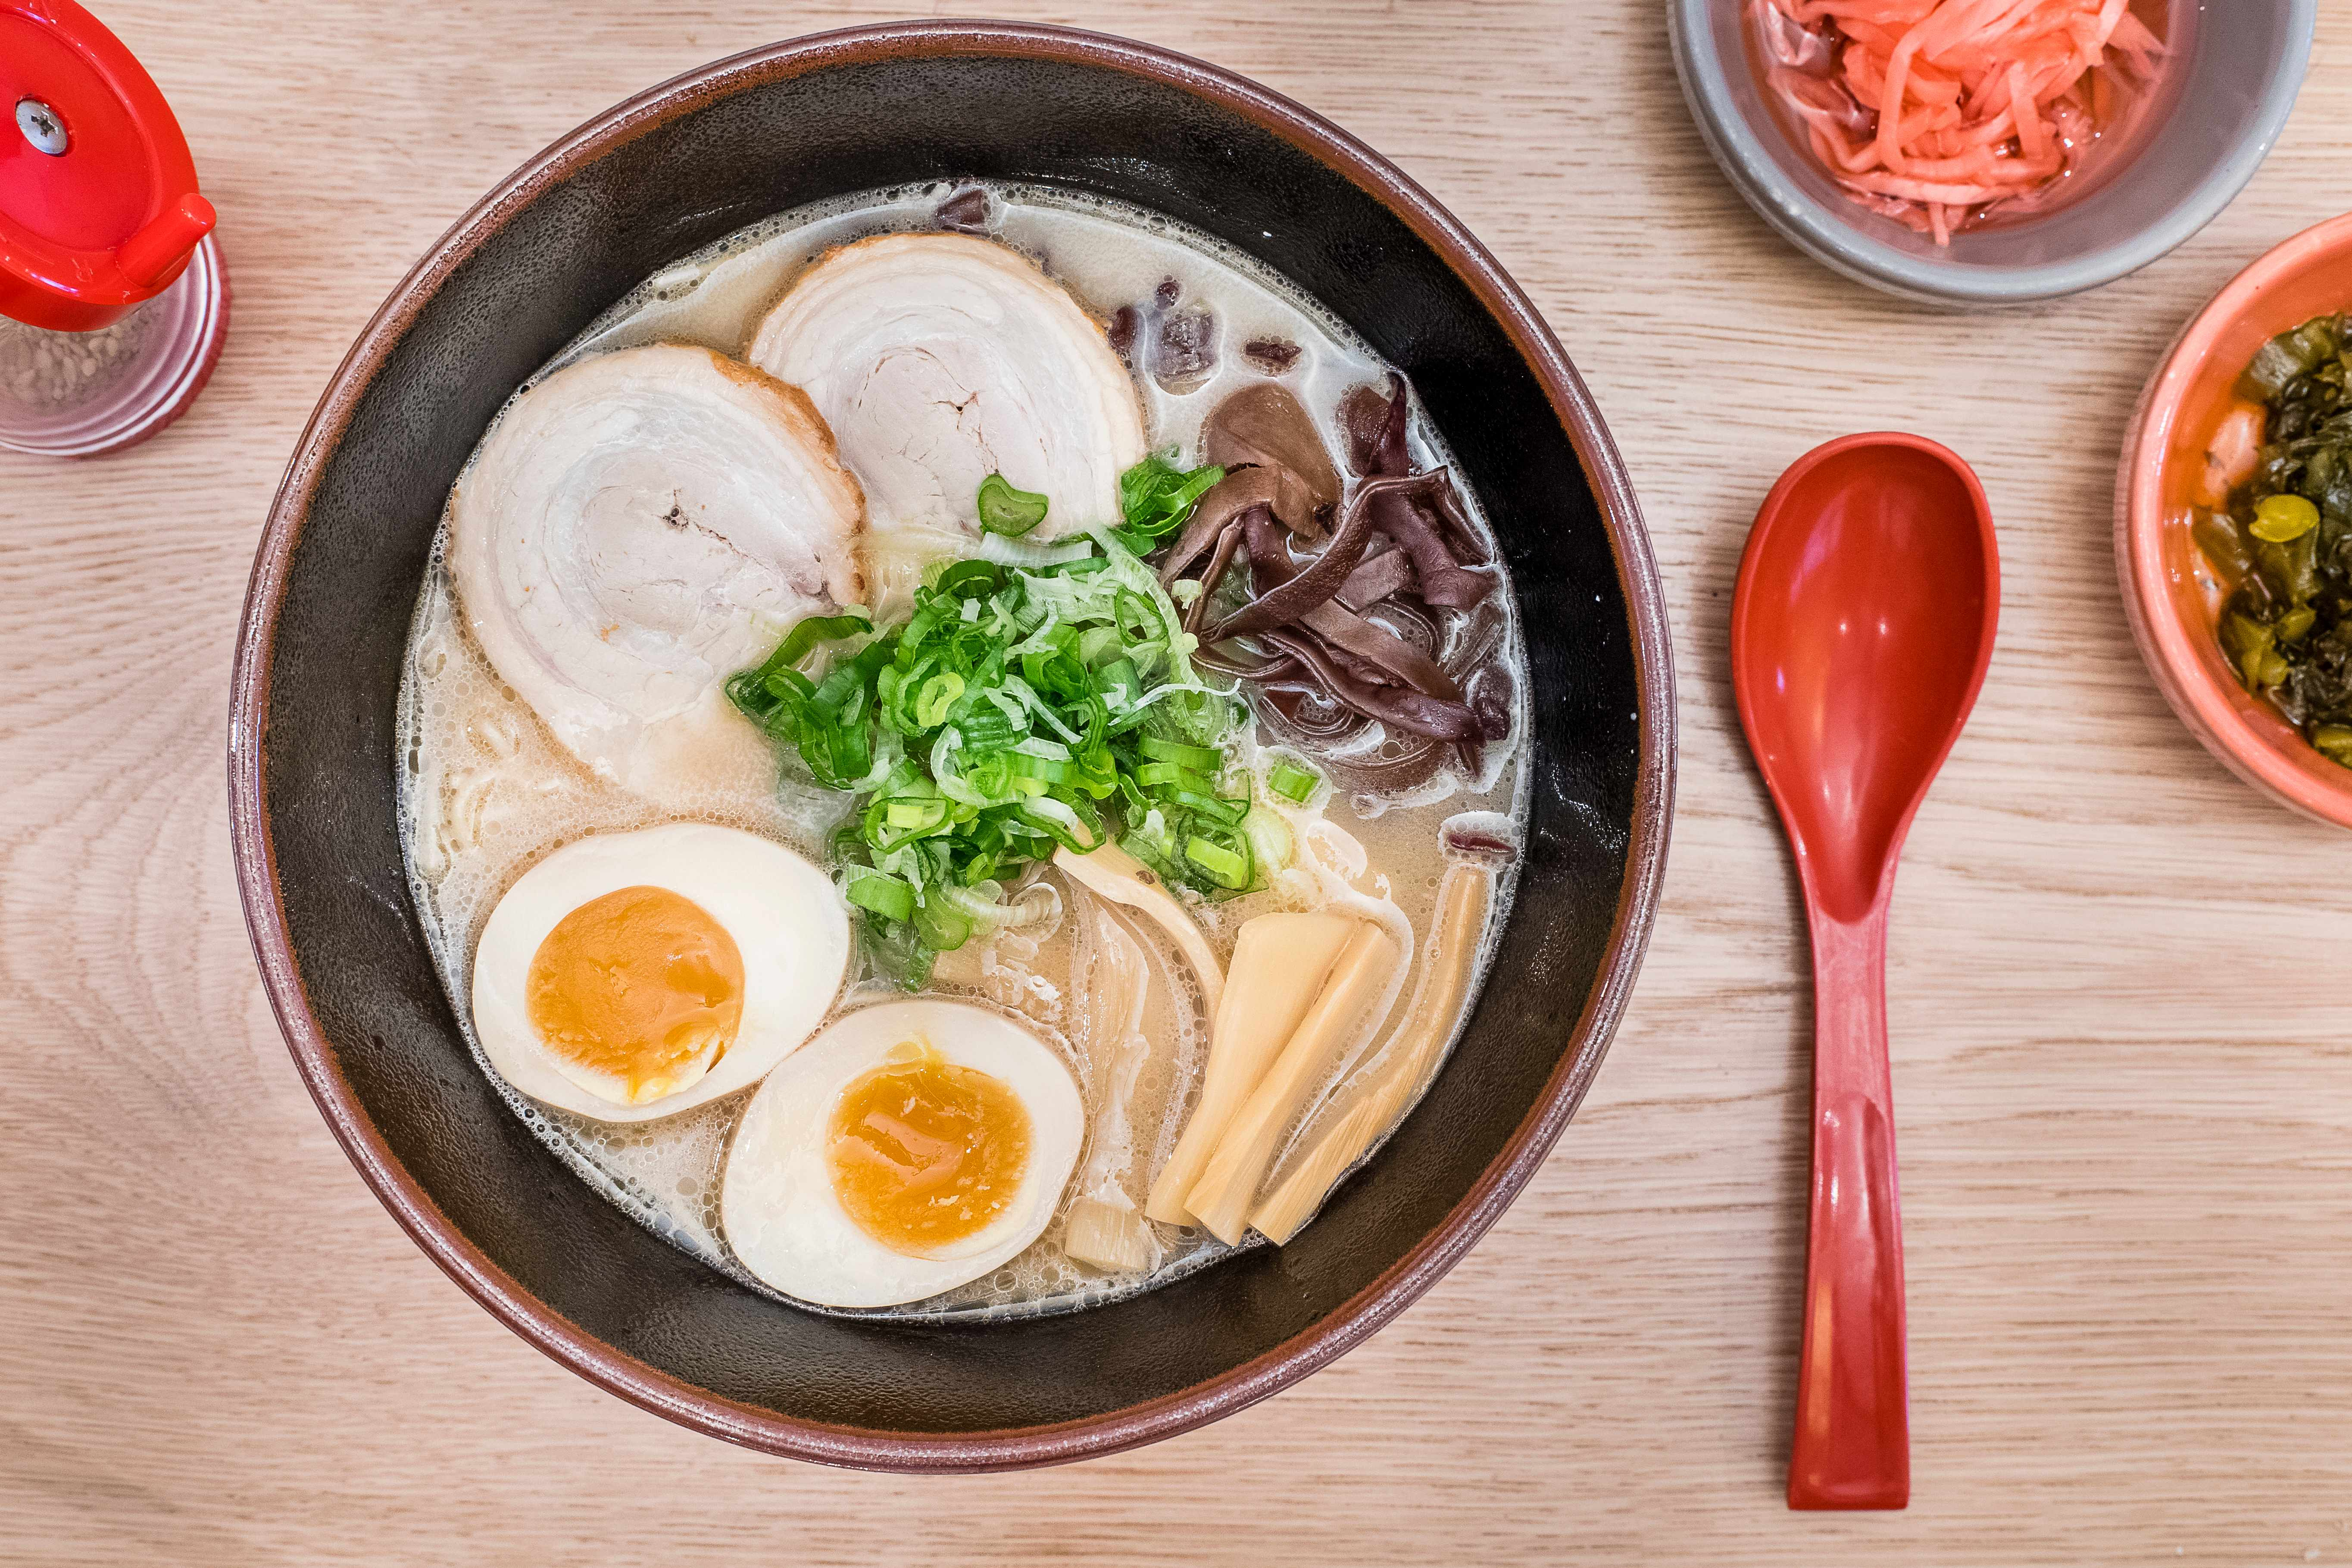 Bowl of ramen with two eggs and pork in, with a red plastic spoon on the side